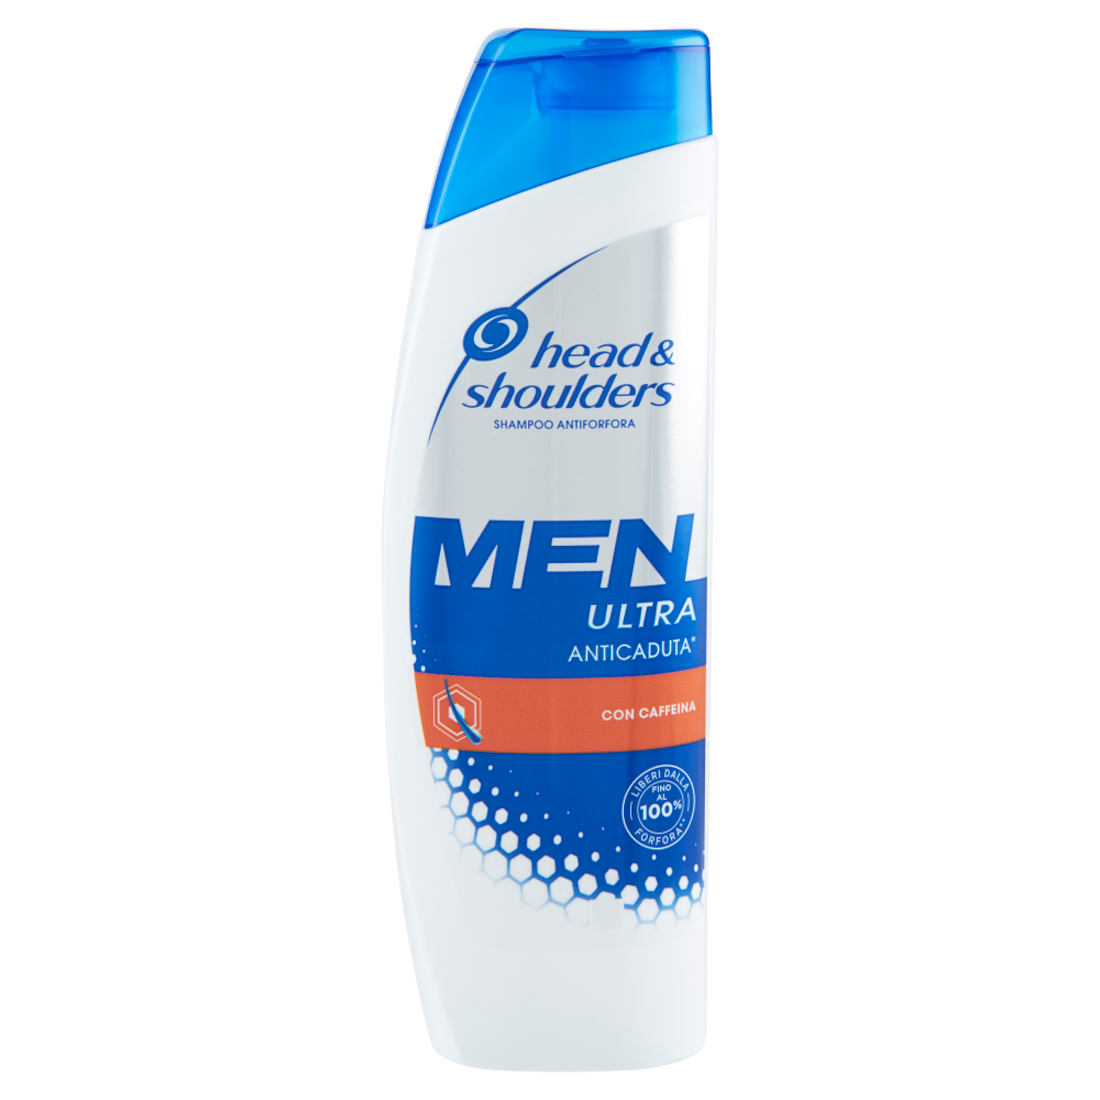 HEAD&SHOULDERS Men Ultra Anticaduta Shampoo Antiforfora 225ml